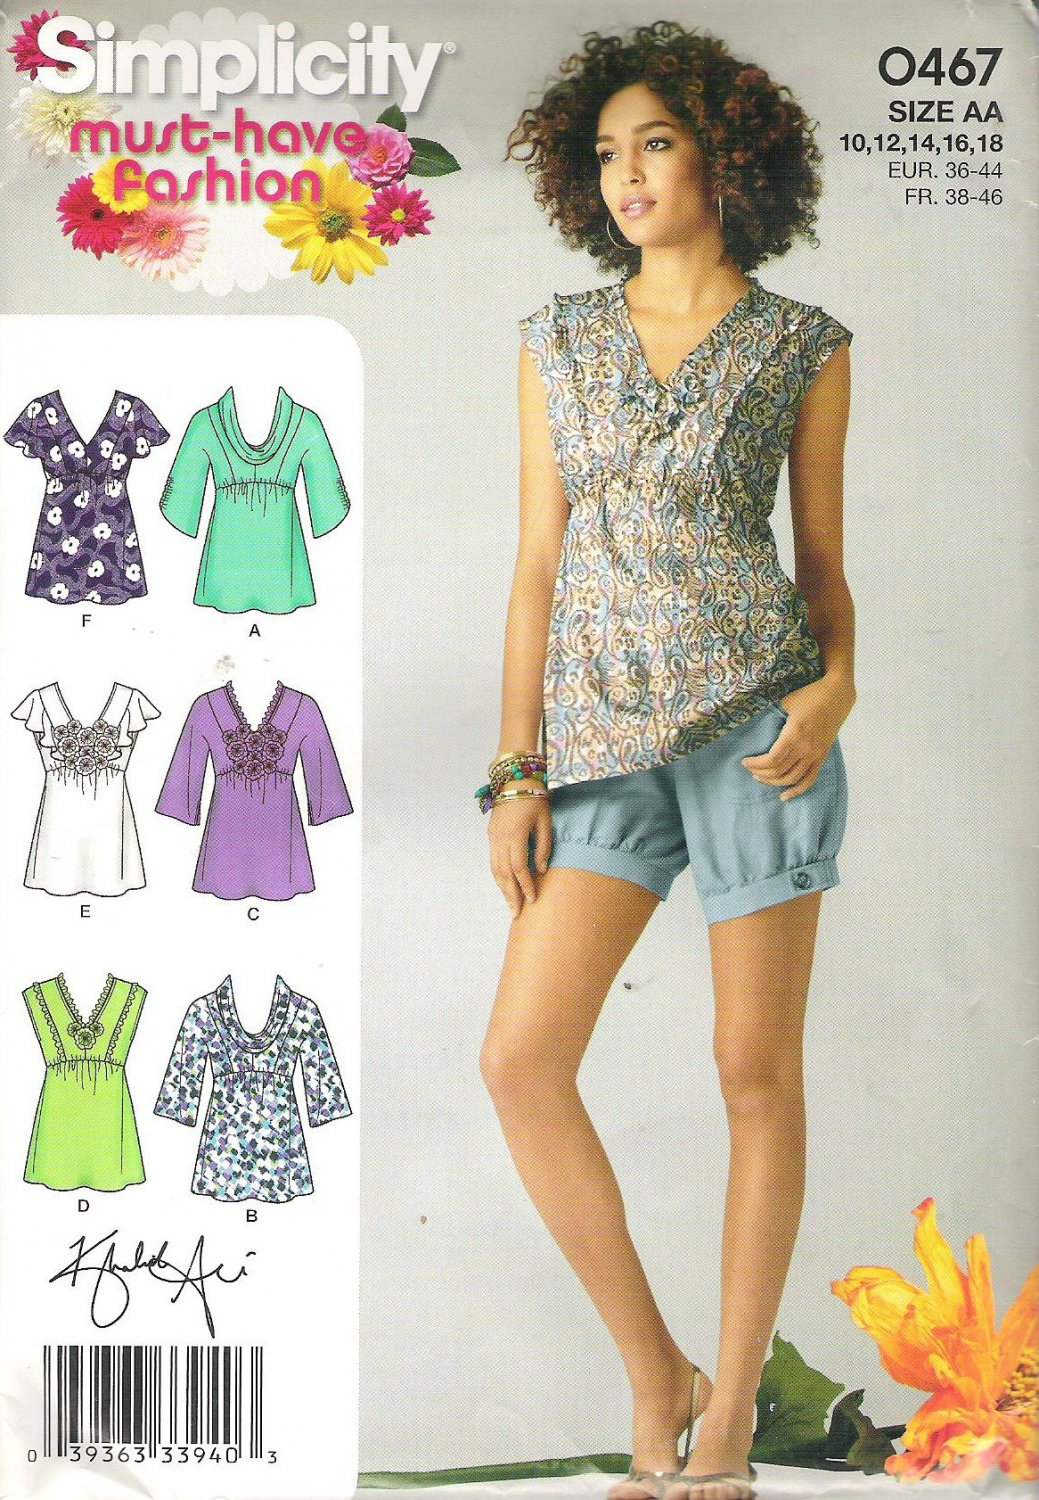 2011 Simplicity 0467 Pattern Top with Lace, Flower Neckline & Sleeve Variations Size 10-18  Uncut